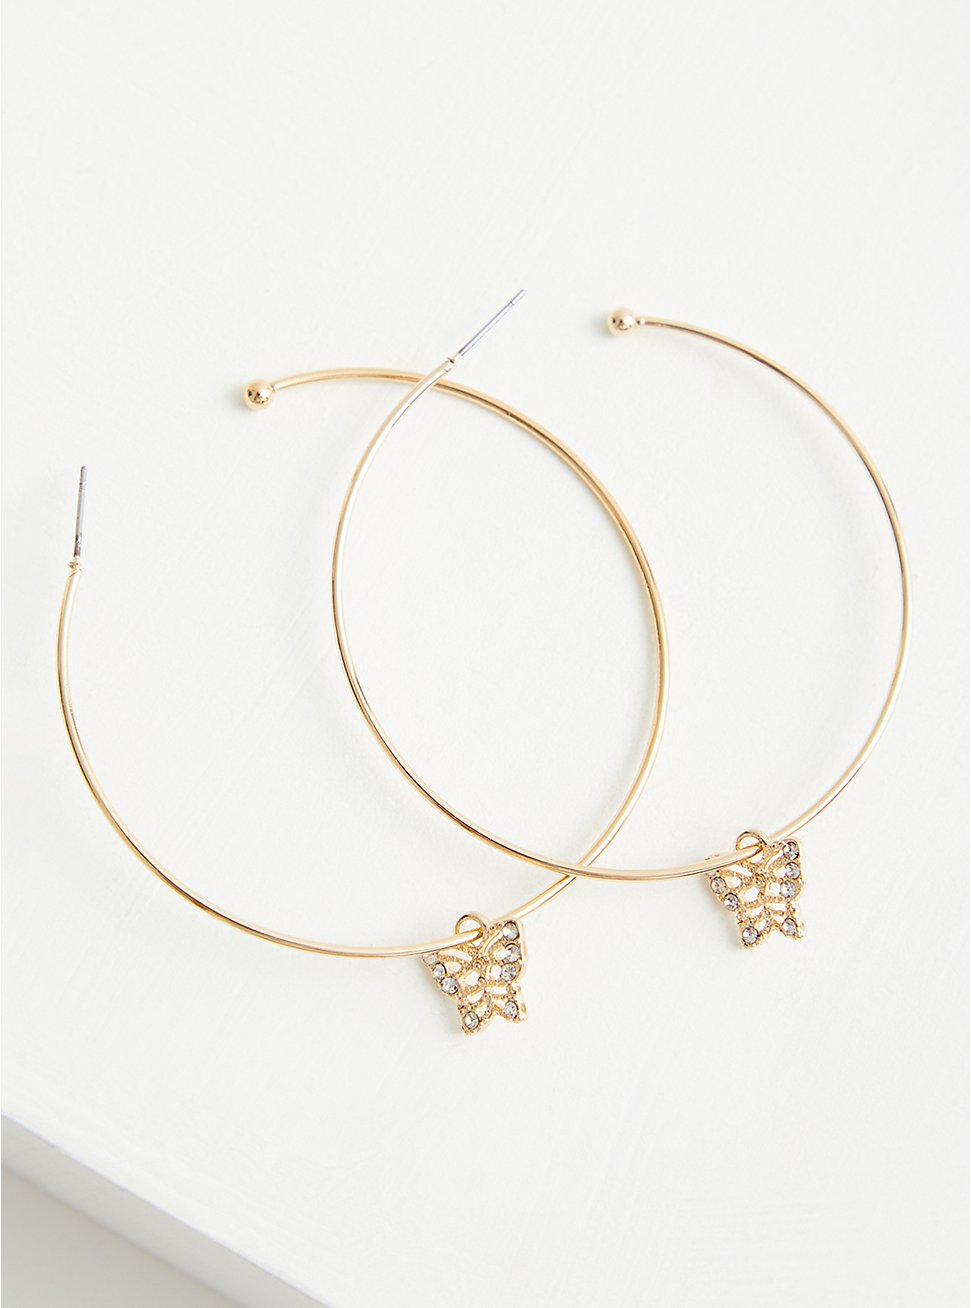 Plus Size Butterfly Charm Hoop Earring - Gold Tone , , hi-res